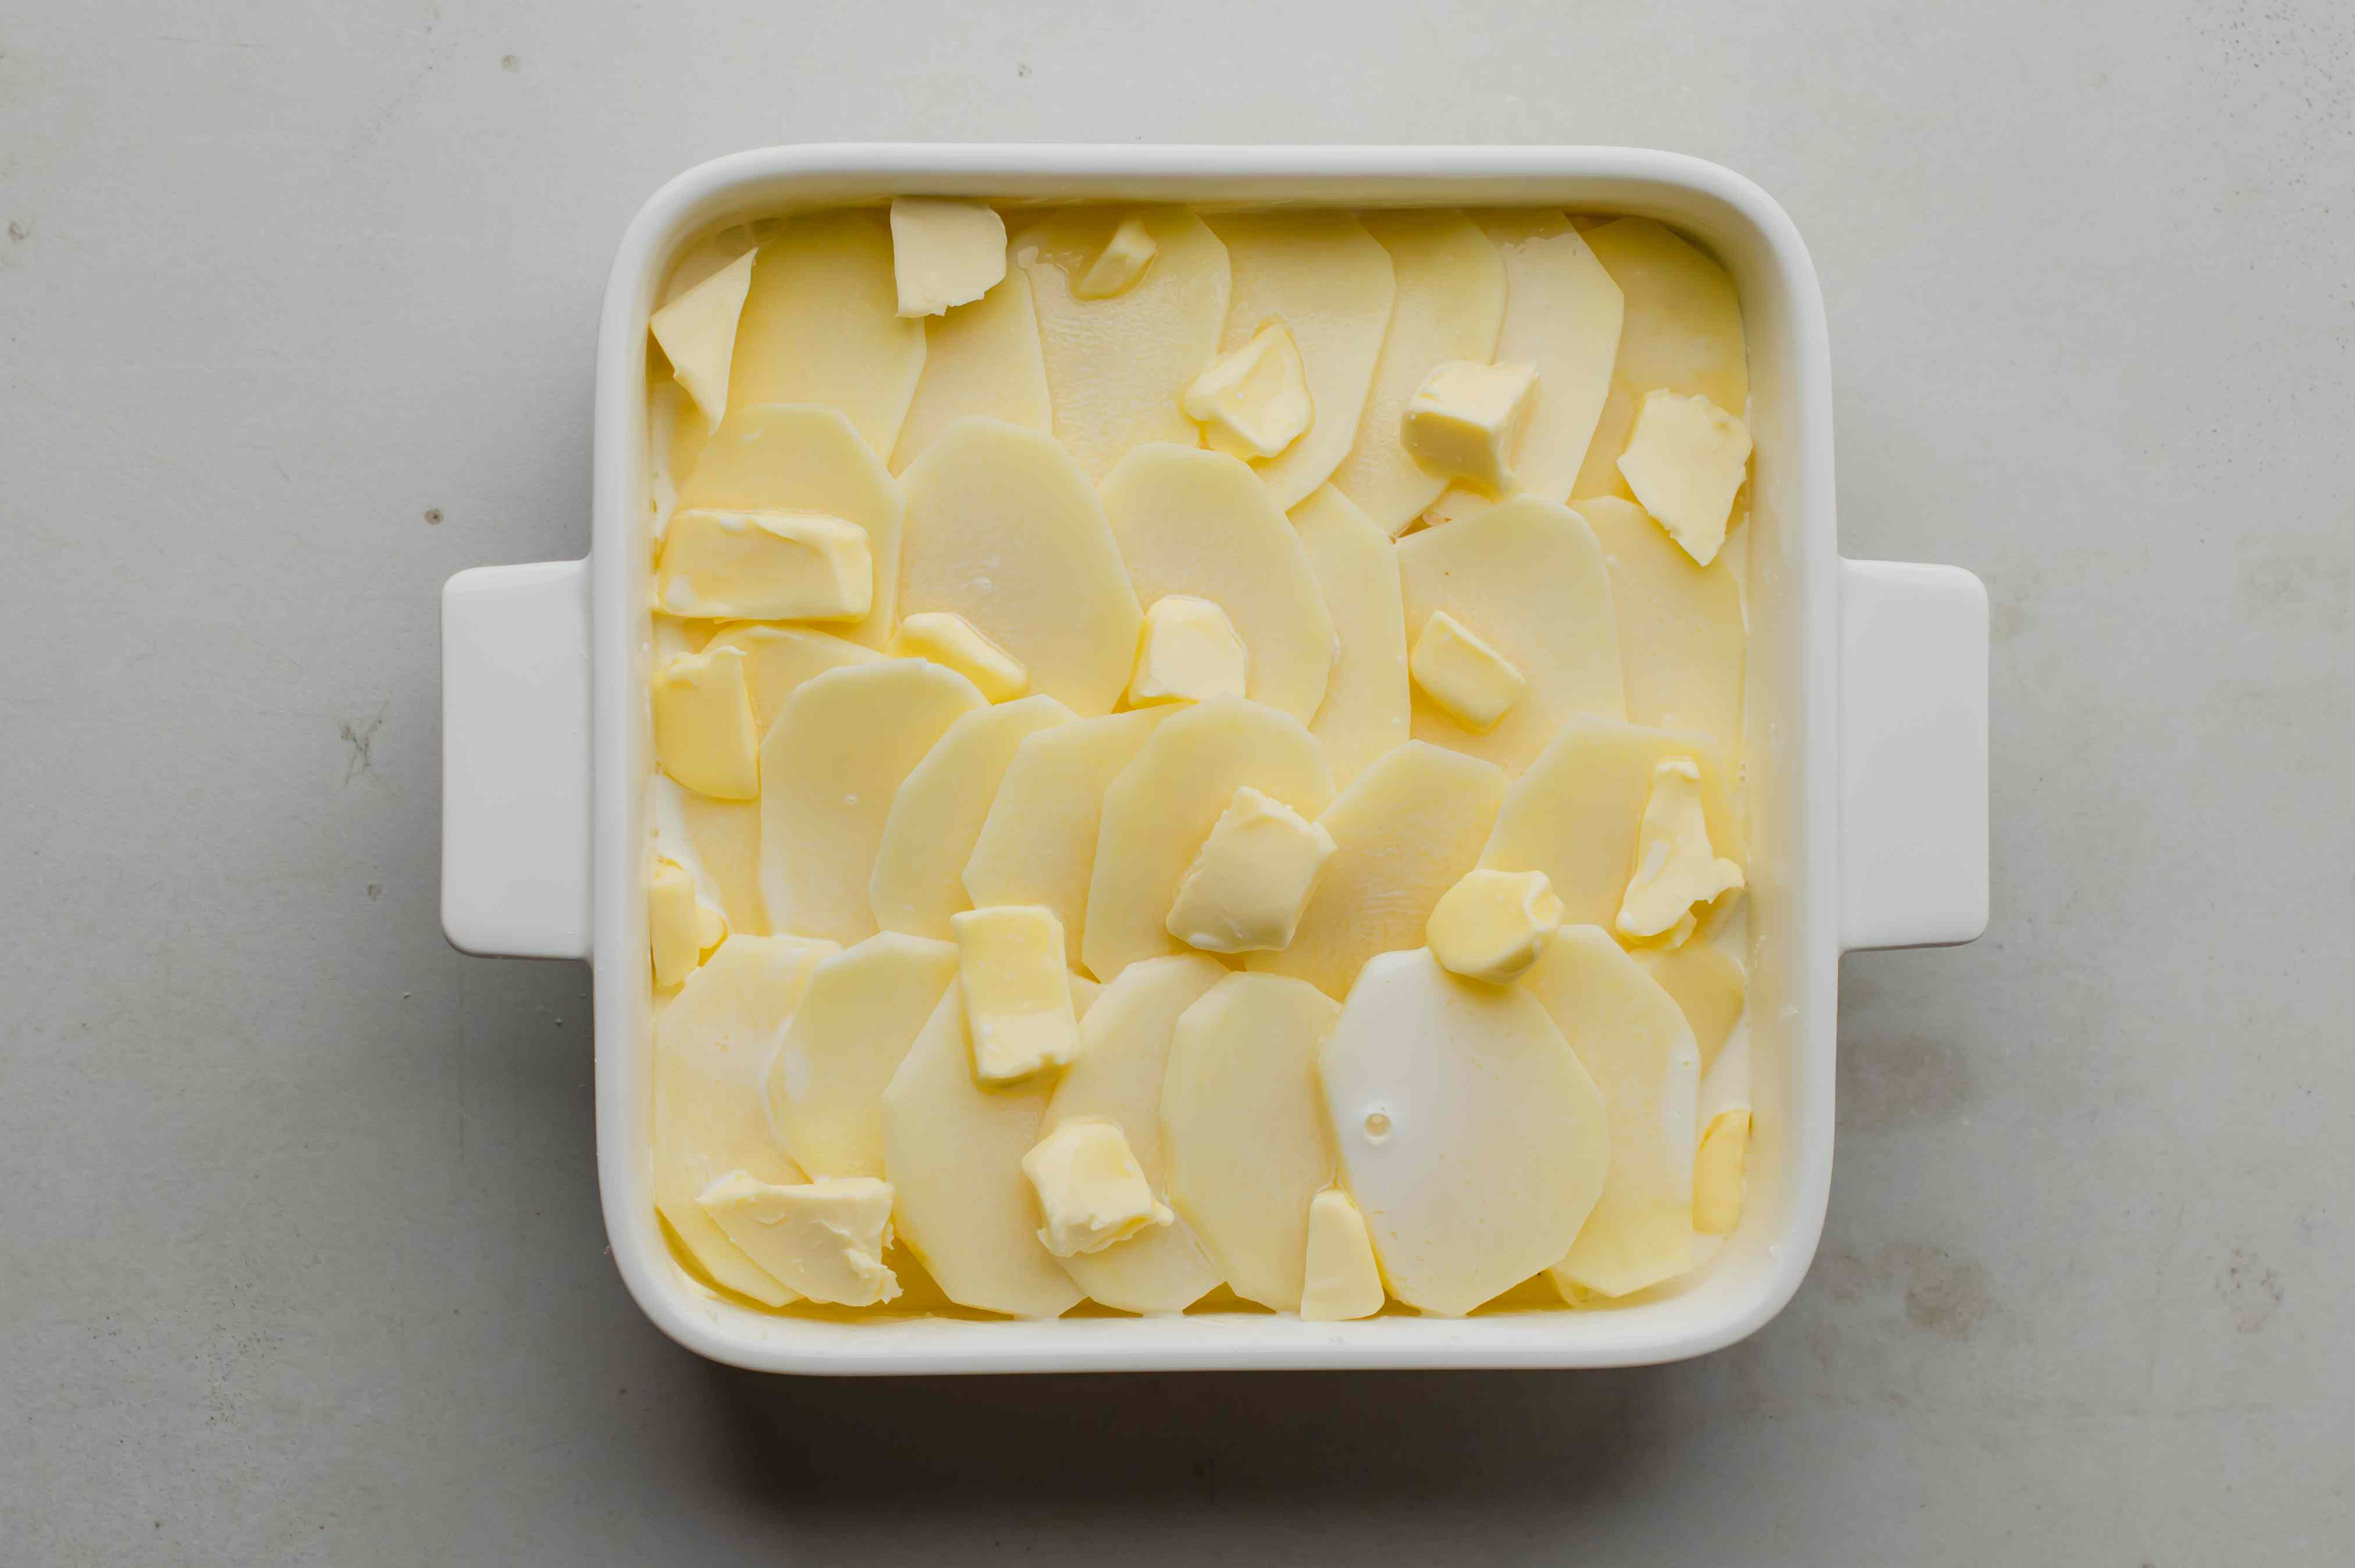 Butter on potatoes